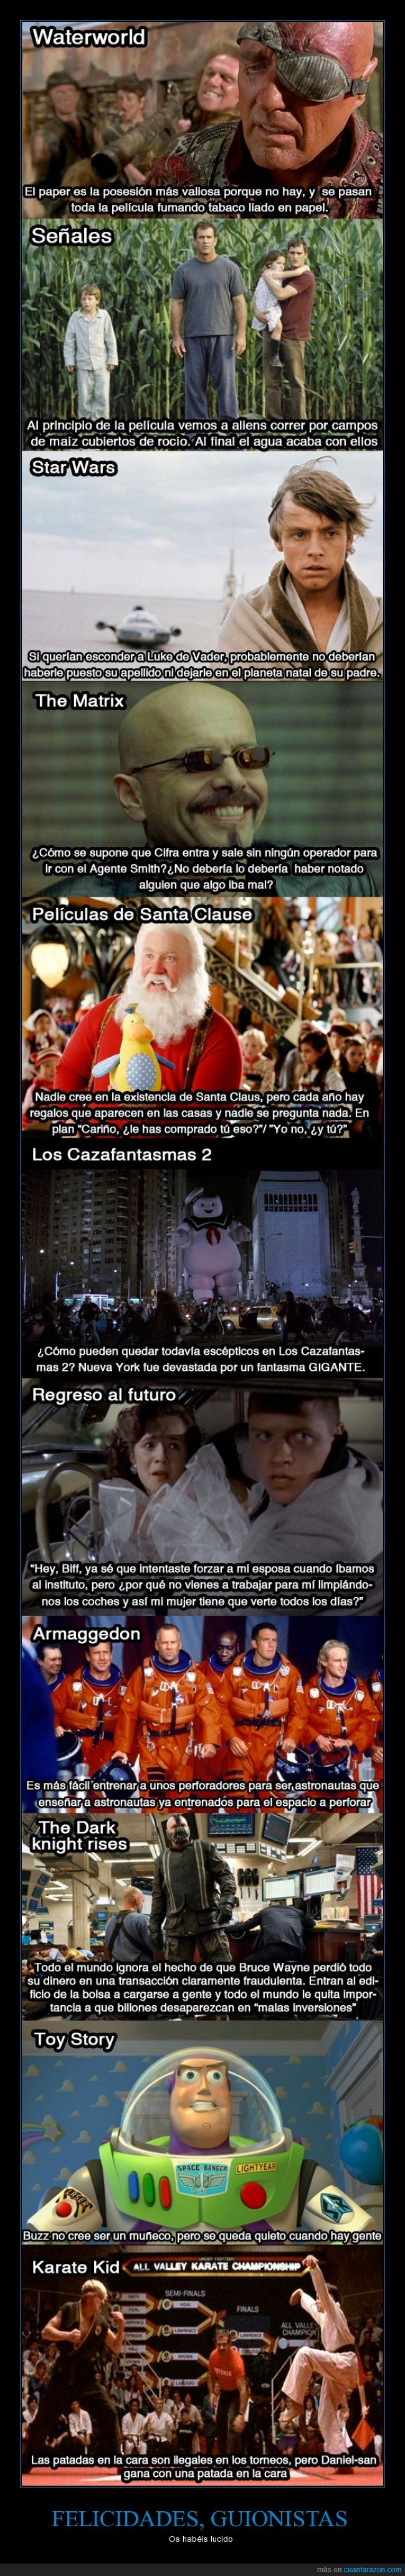 agua,argumento,armaggedon,atronautas,back to the future,batman,buzz,cara,dinero,error,grulla,Karate Kid,Los cazafantasmas,matrix,papel,patada,pelicula,perforadores,regreso al futuro,señales,Skywalker,Toy Story,waterworld